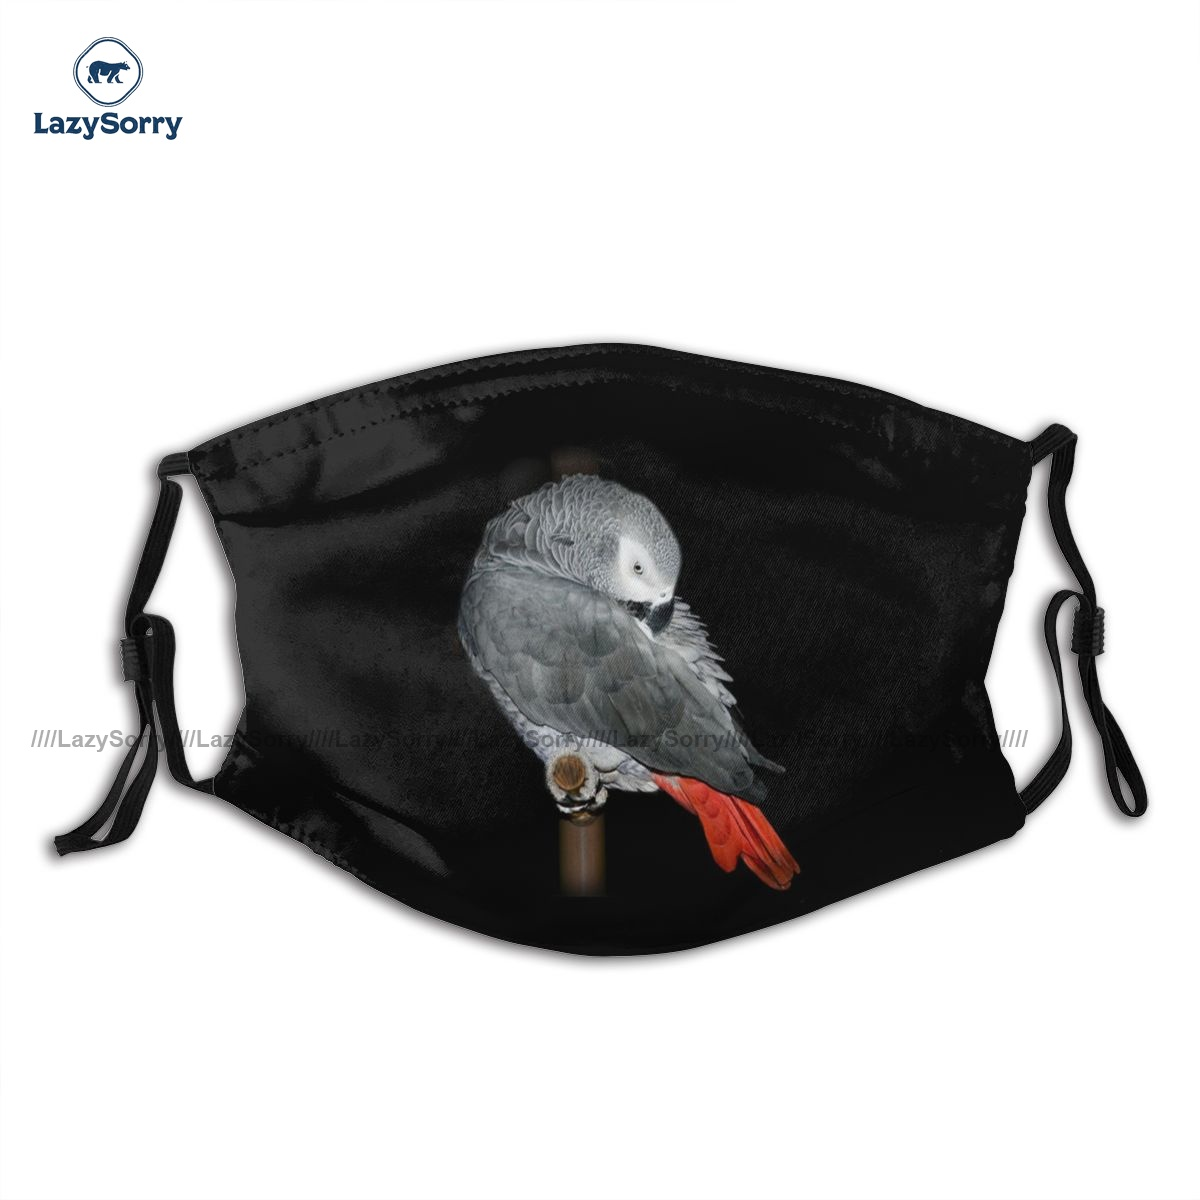 Sublimation Adult African Grey Parrot Face Mouth Mask Fantasy Cloth Charm Facial Mask With Filters